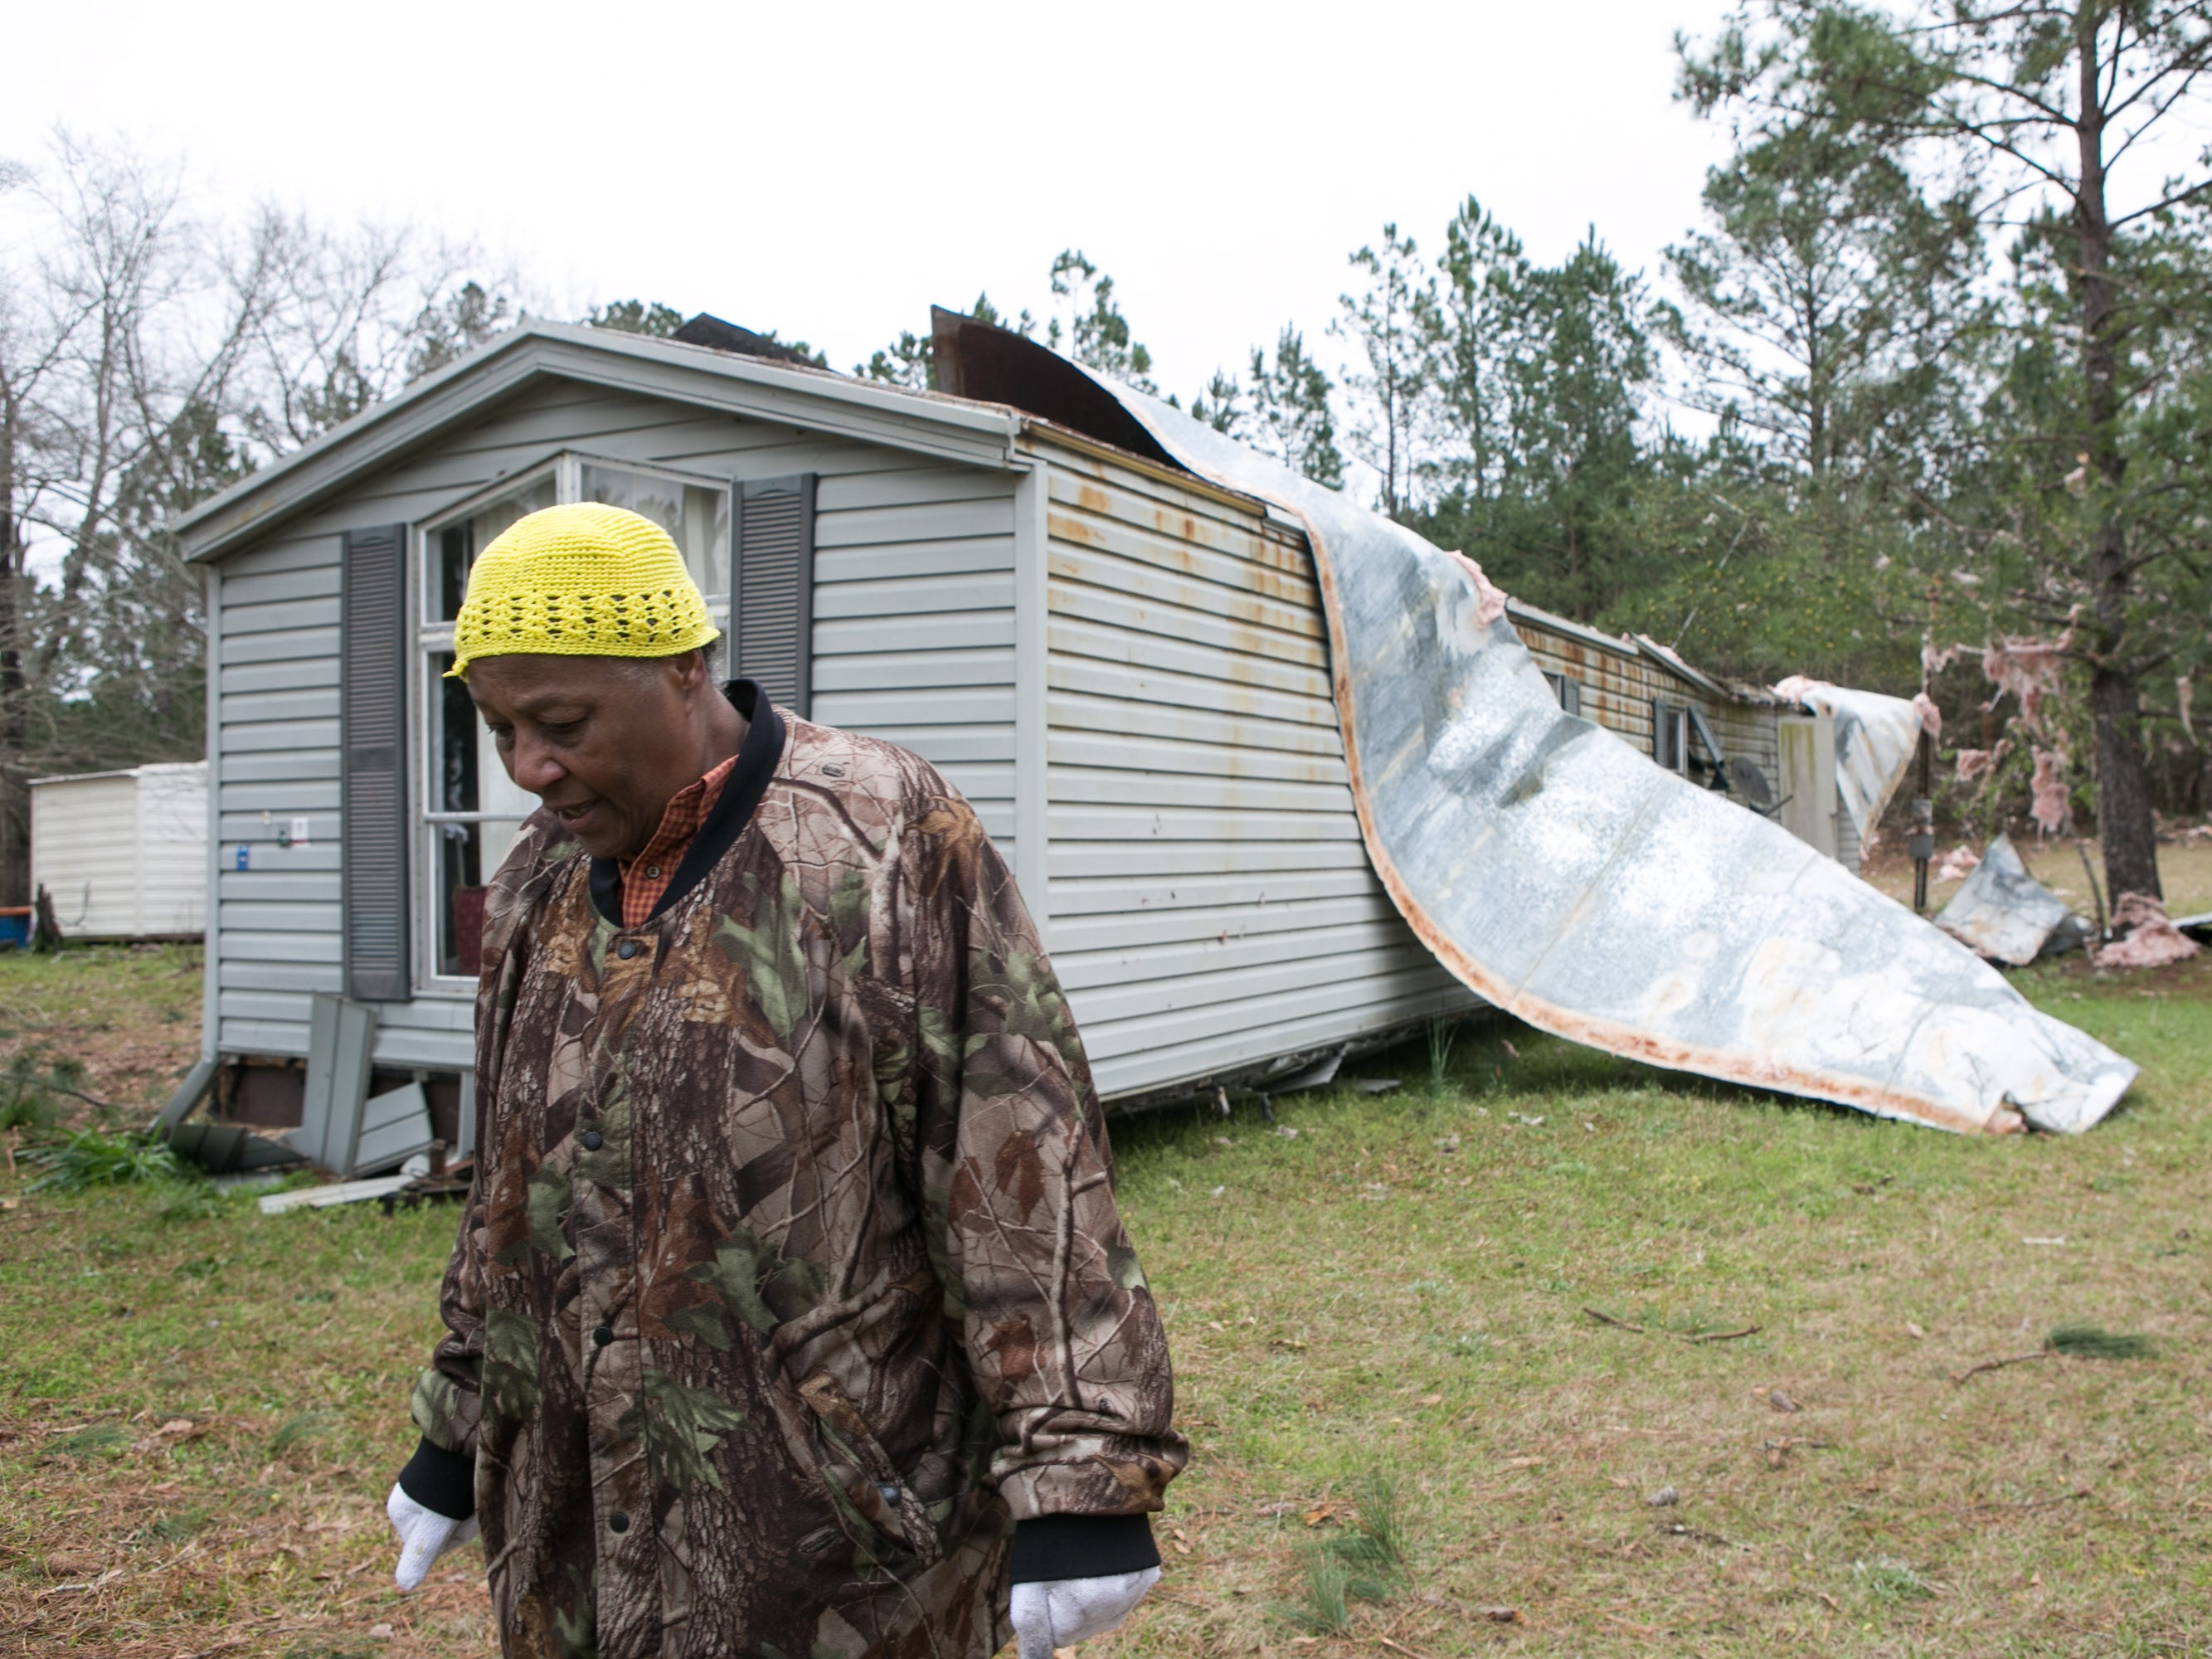 Christine Richardson stands in front of a house she owns that was damaged by a tornado outbreak on March 4, 2019 in Beauregard, Ala.  Richardson's son was in the house when the tornado hit and is safe.